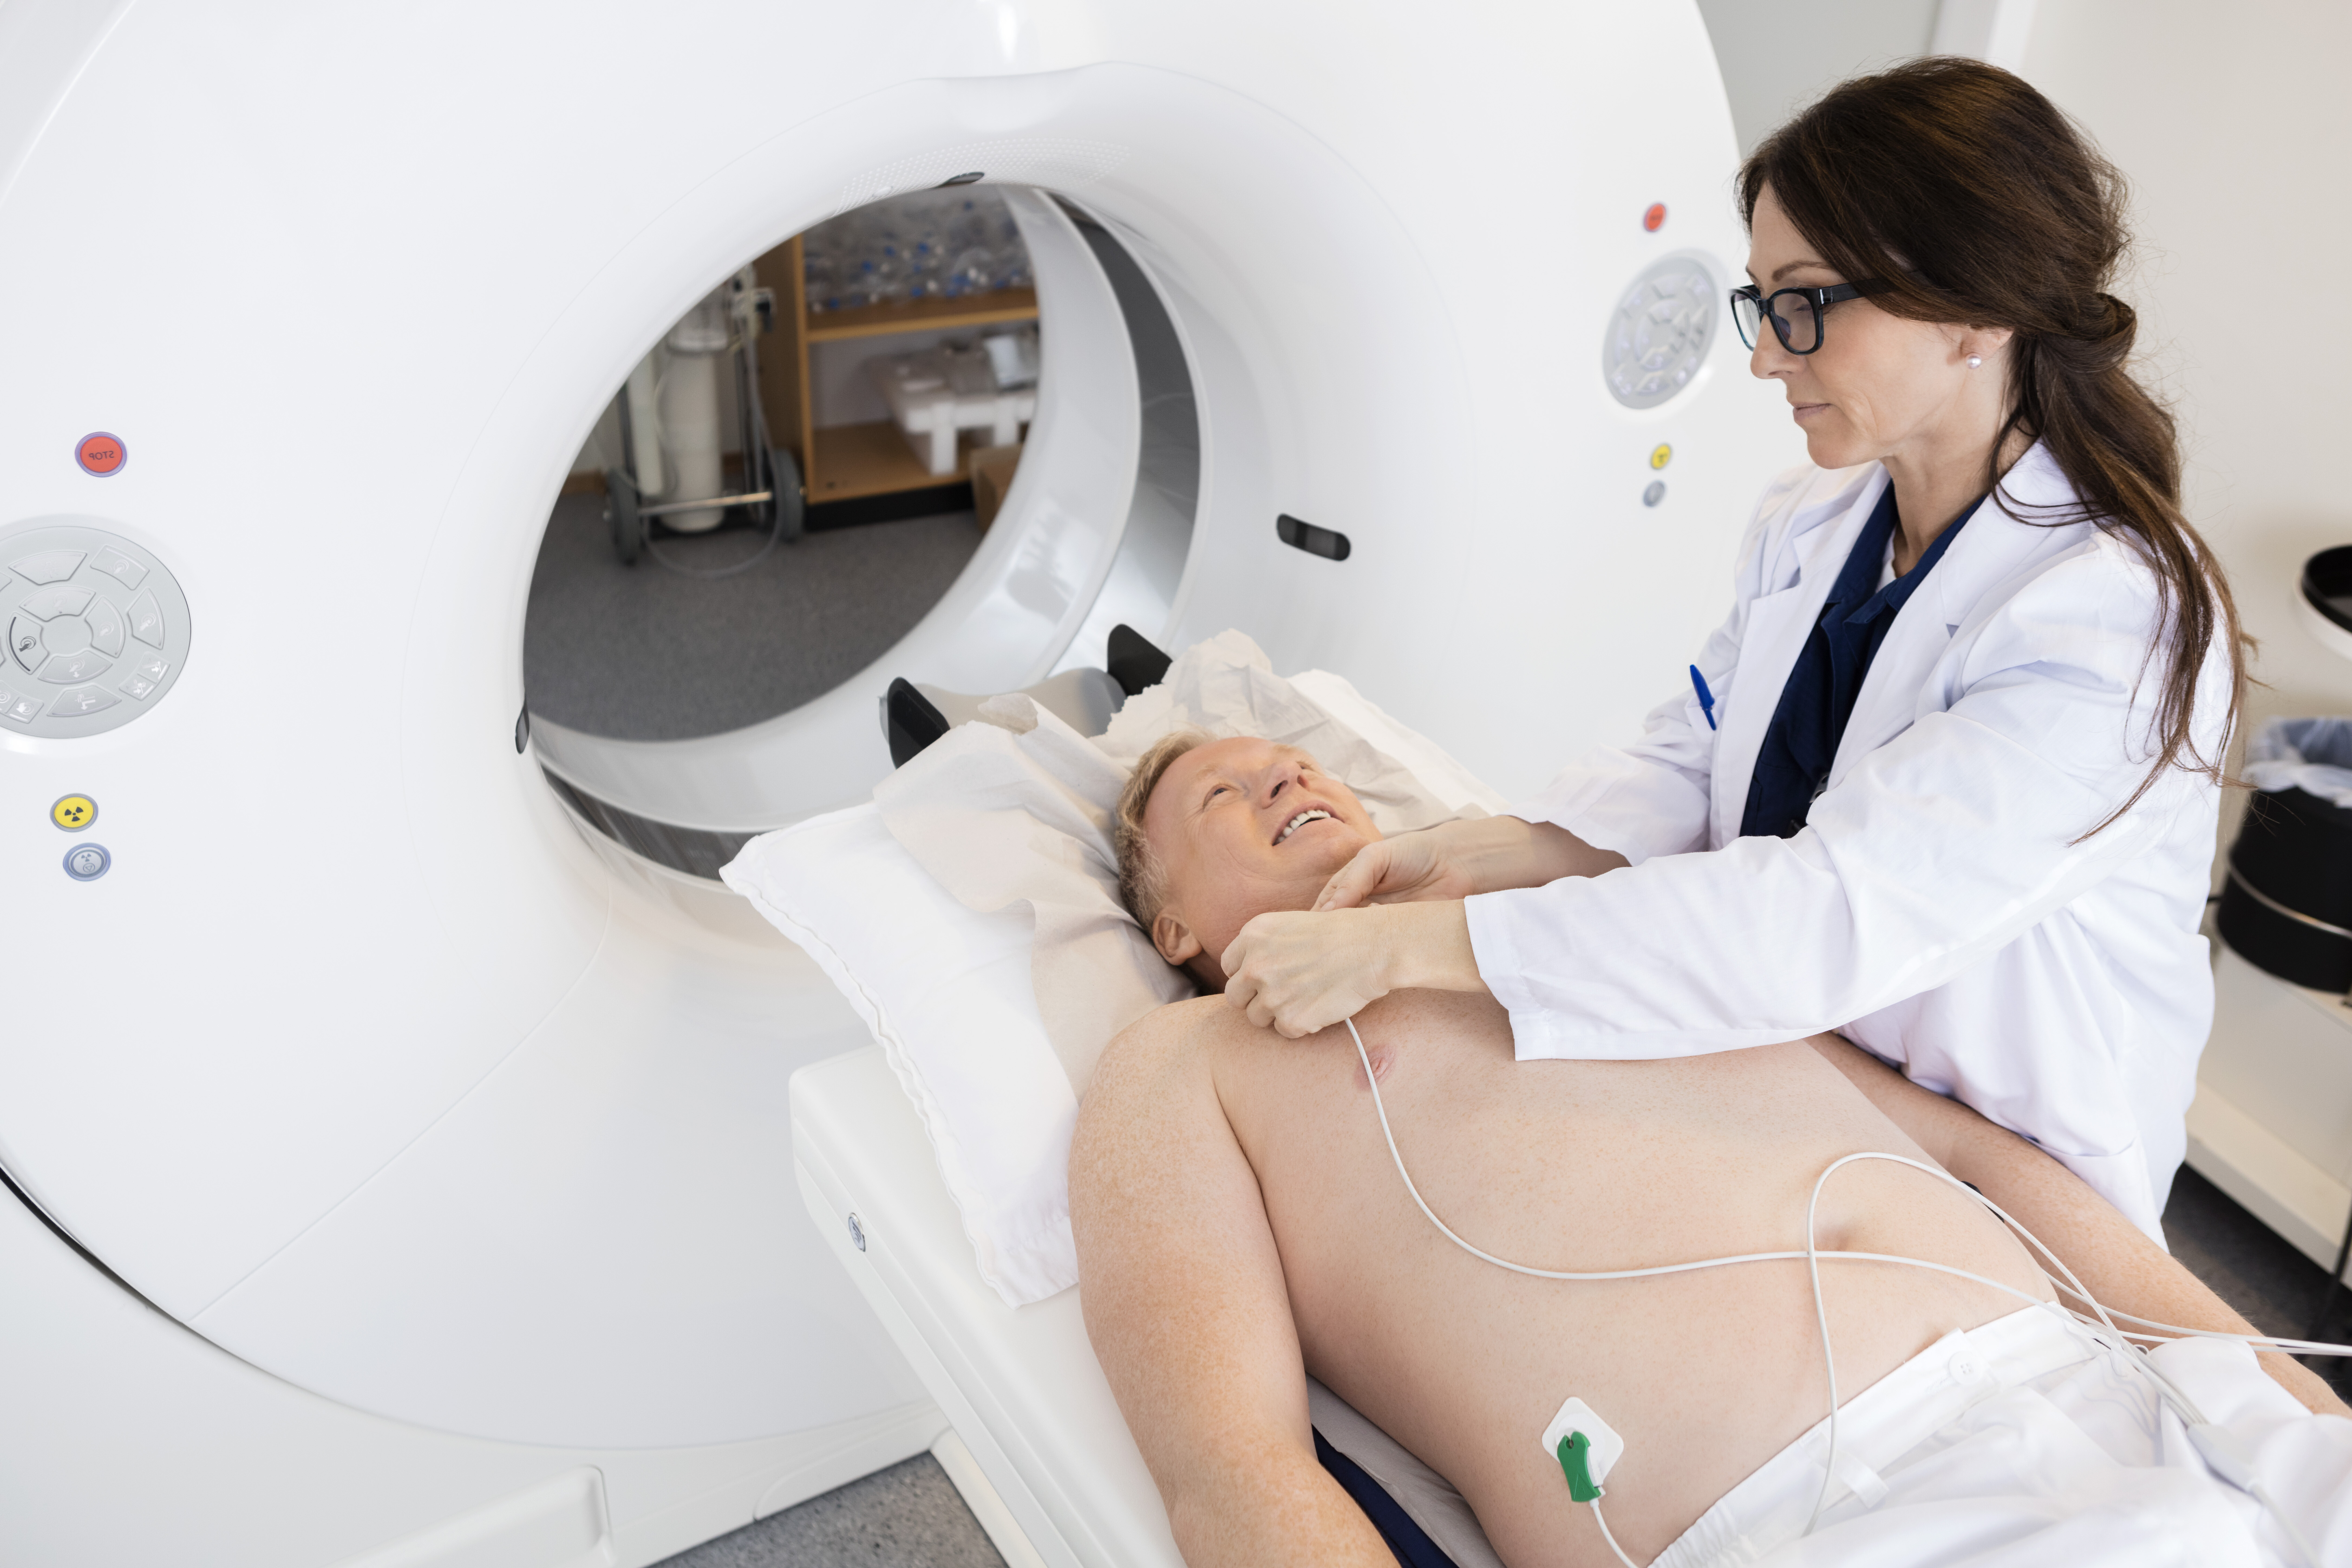 Types of Cancers CT Scan Most Likely Causes & Risks